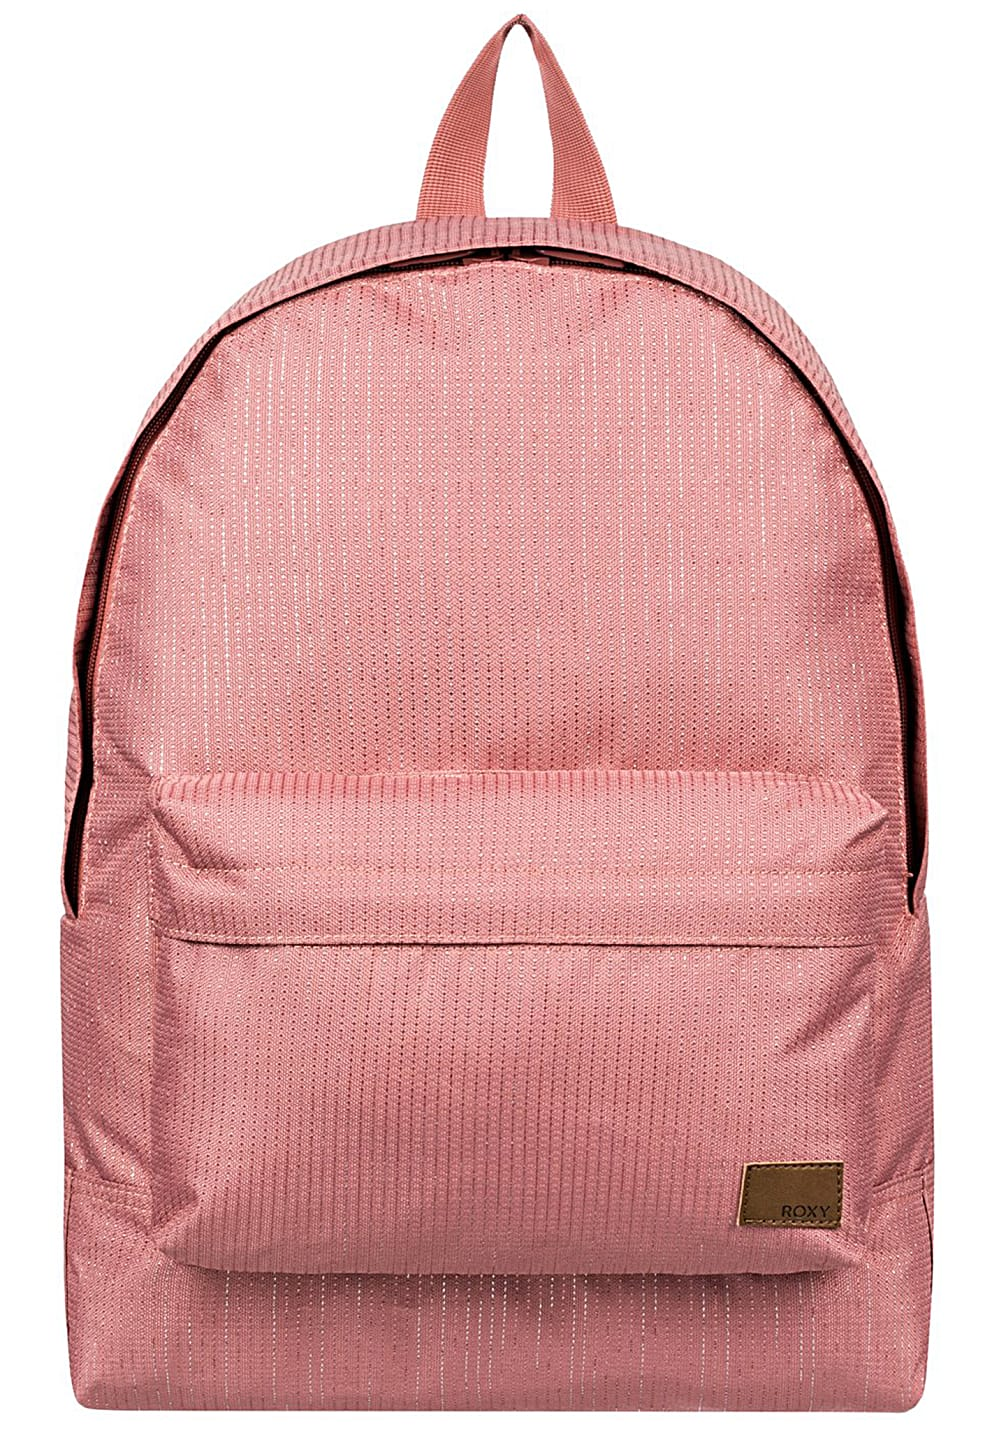 45cf93189 Roxy Sugar Baby Solid - Backpack for Women - Pink - Planet Sports